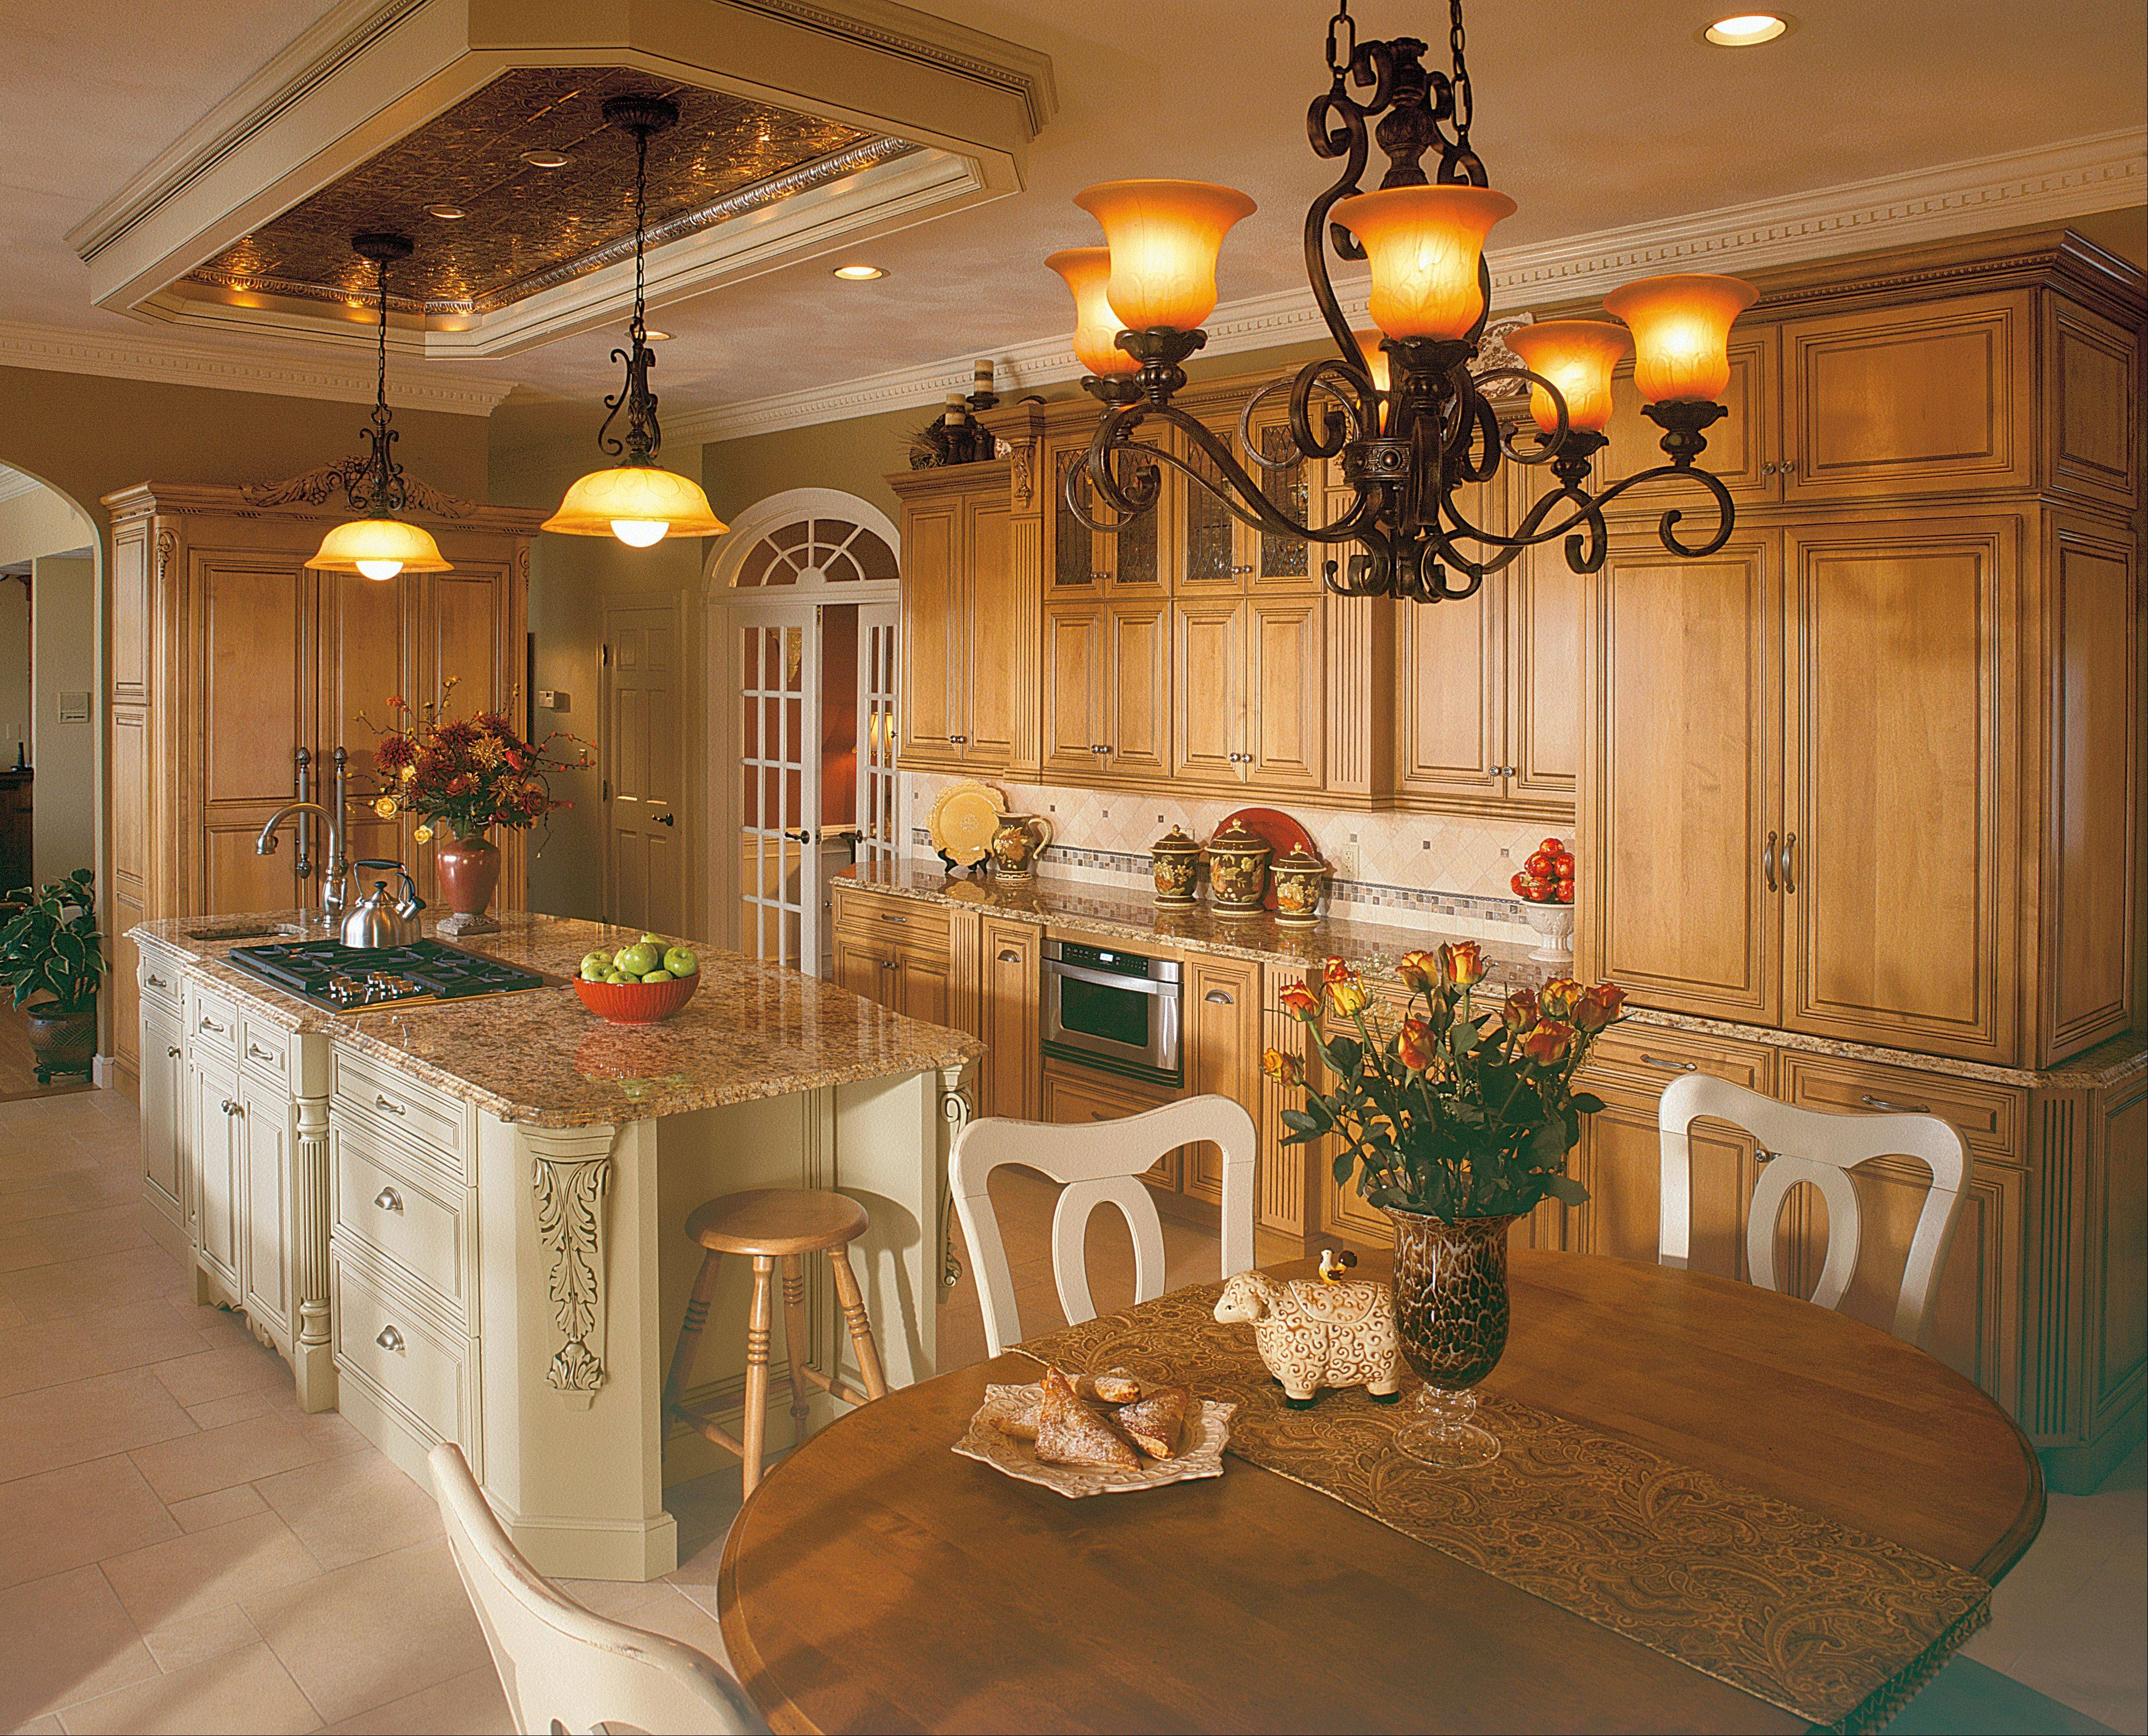 Homeowners who are embarking on kitchen renovations are generally choosing taller cabinets that extend all the way to the ceiling with fancy moldings.